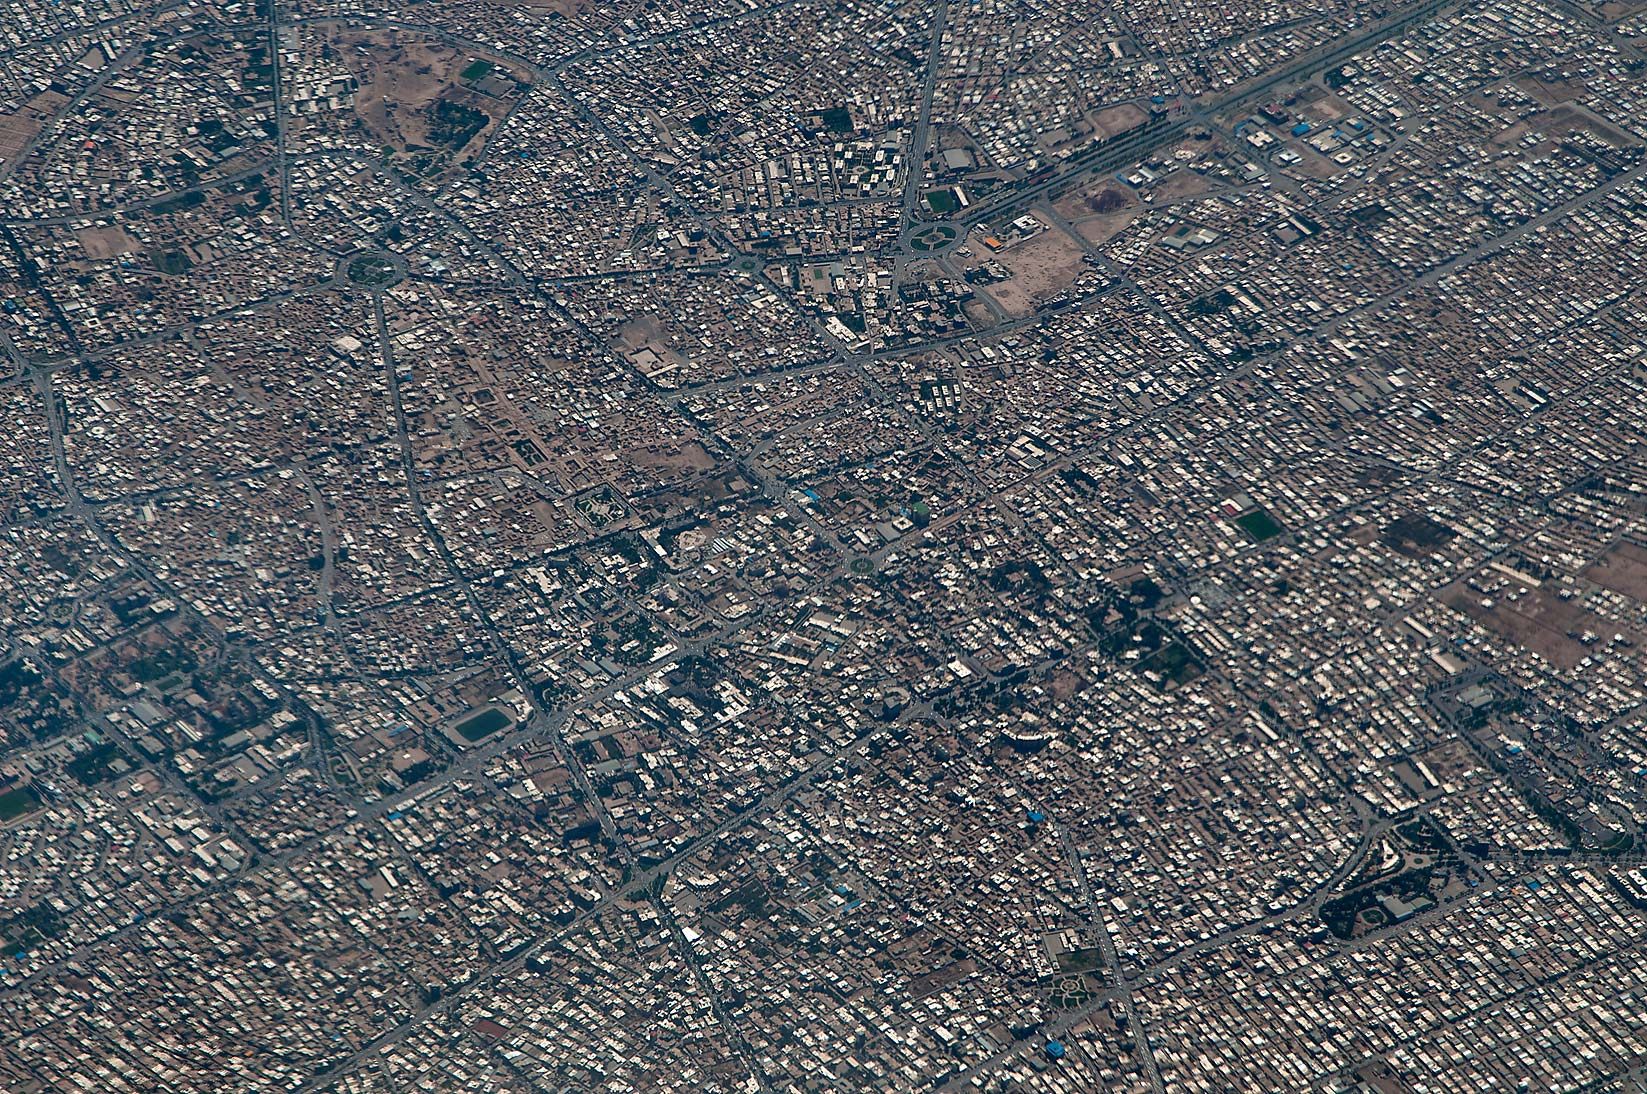 A city in southern Iran, near Kerman. View from a...a plane from Dubai, UAE to Houston, TX